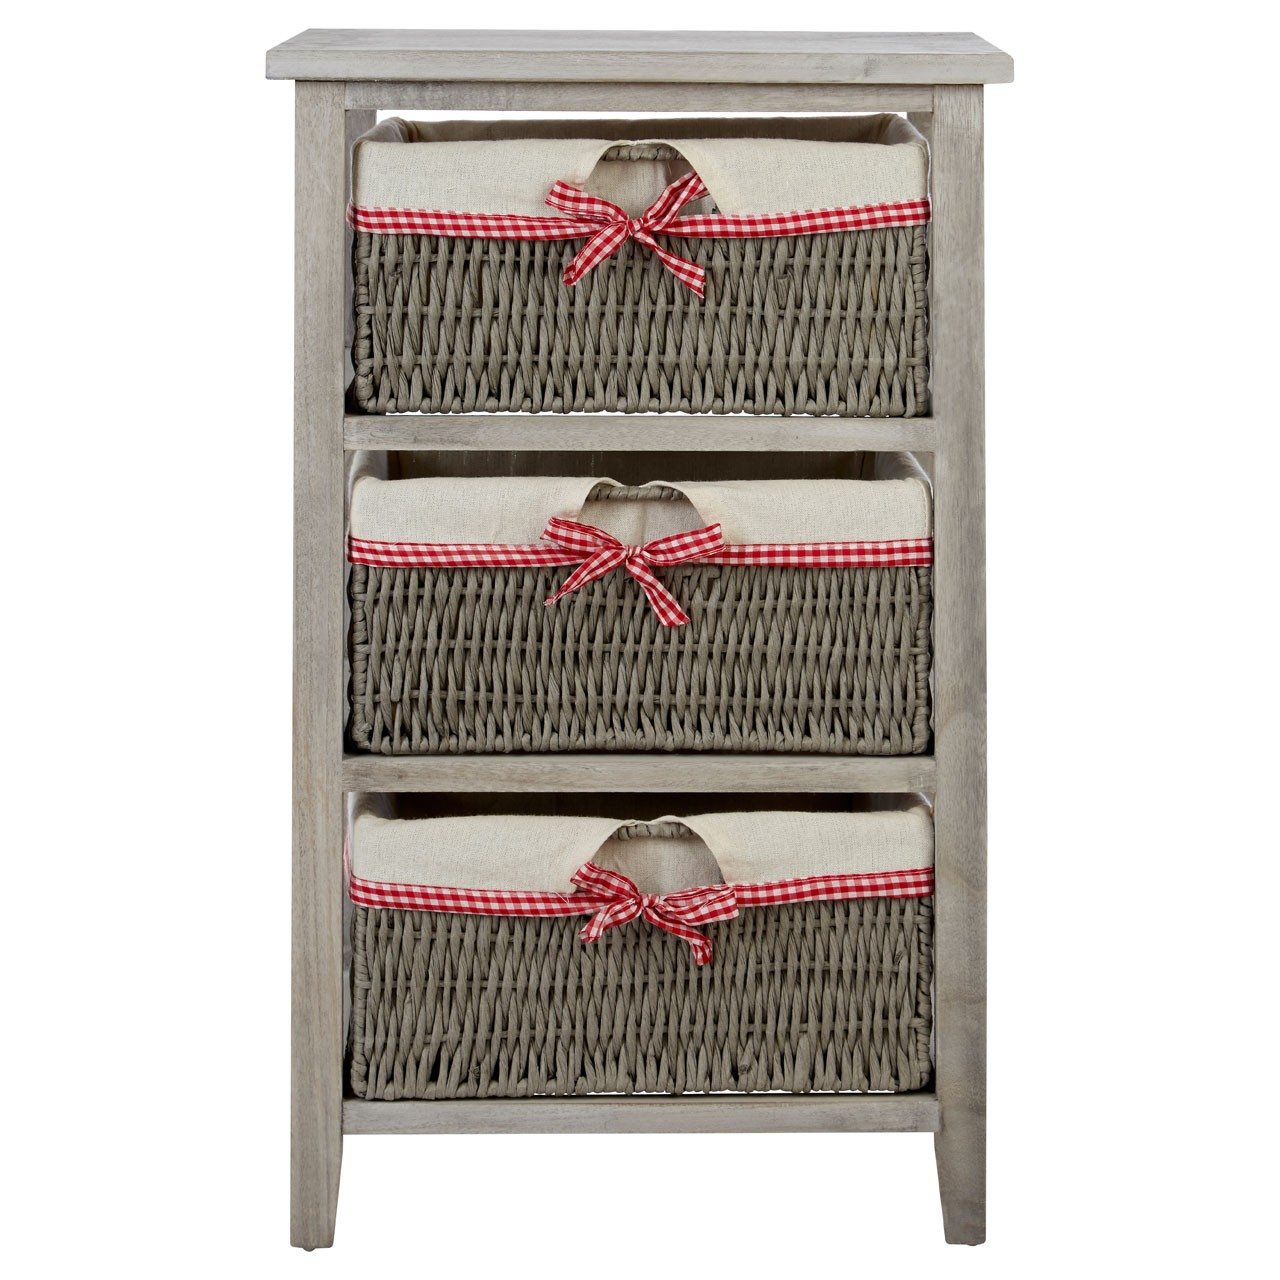 Prime Furnishing Cotswold Drawer Chest With 3 Woven Baskets